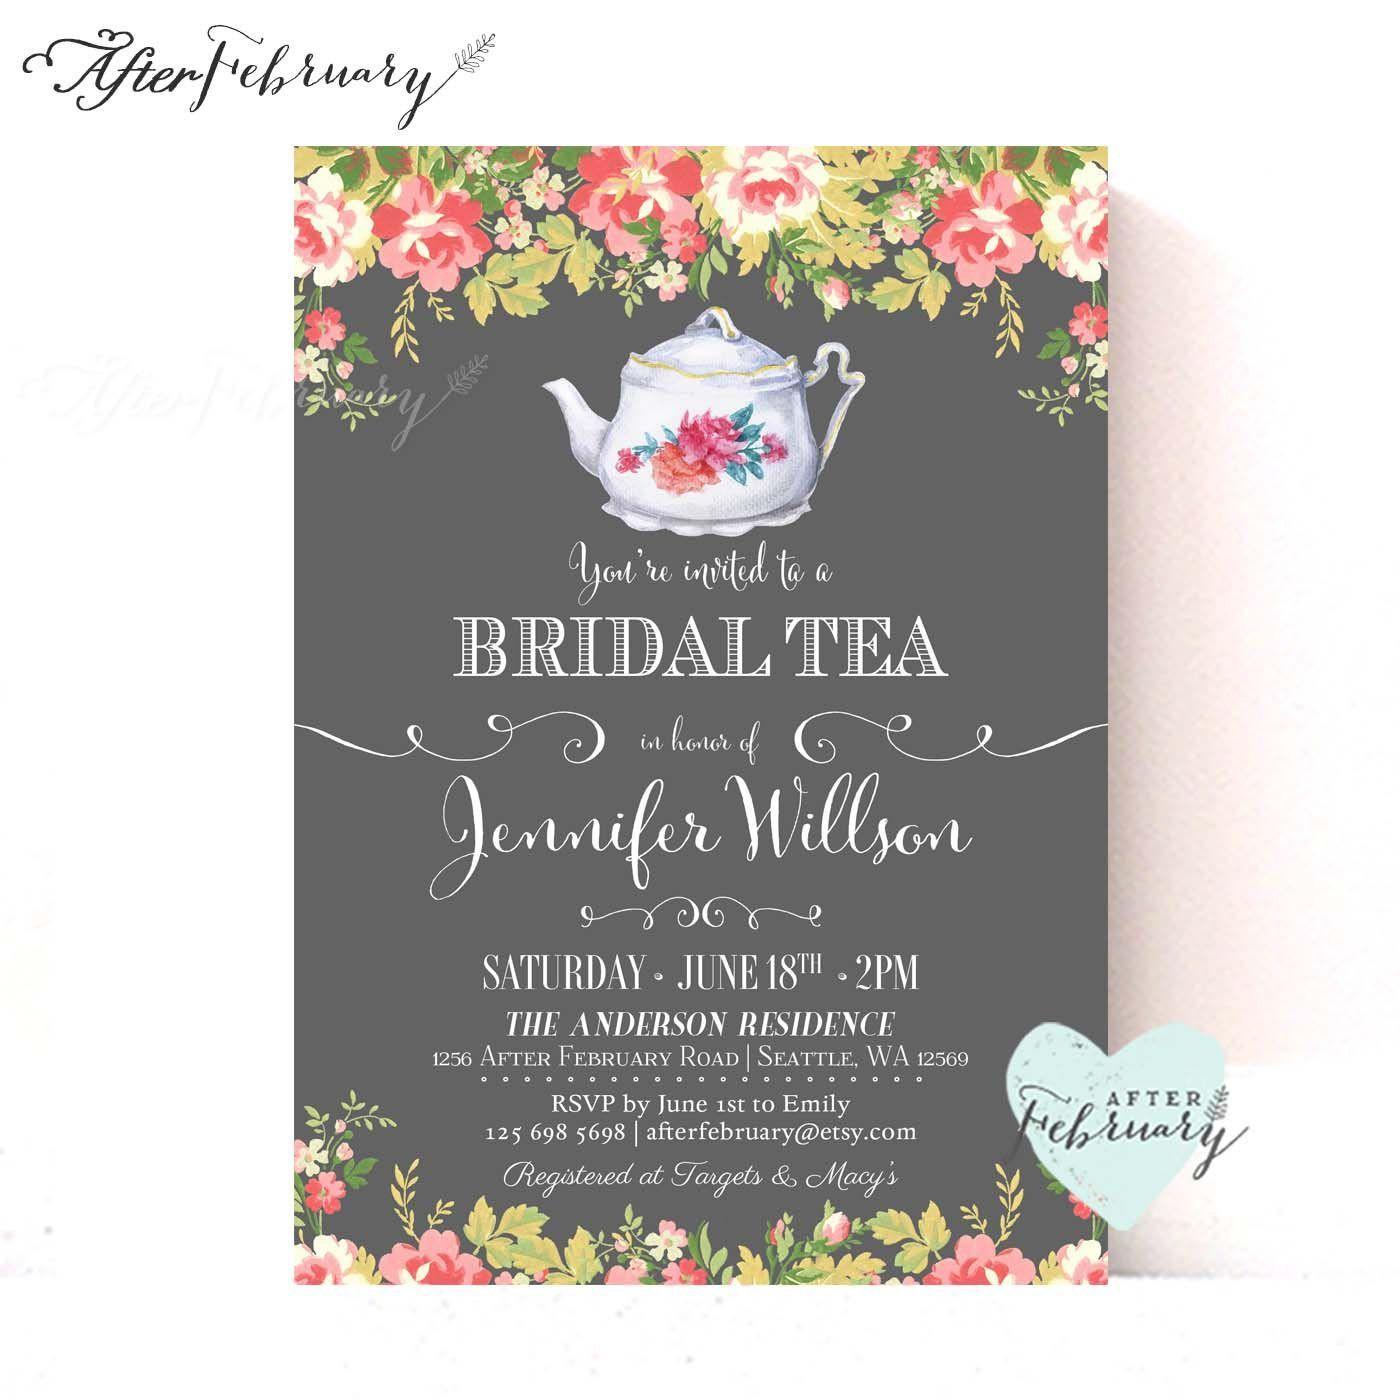 Bridal Shower Invite Template Word